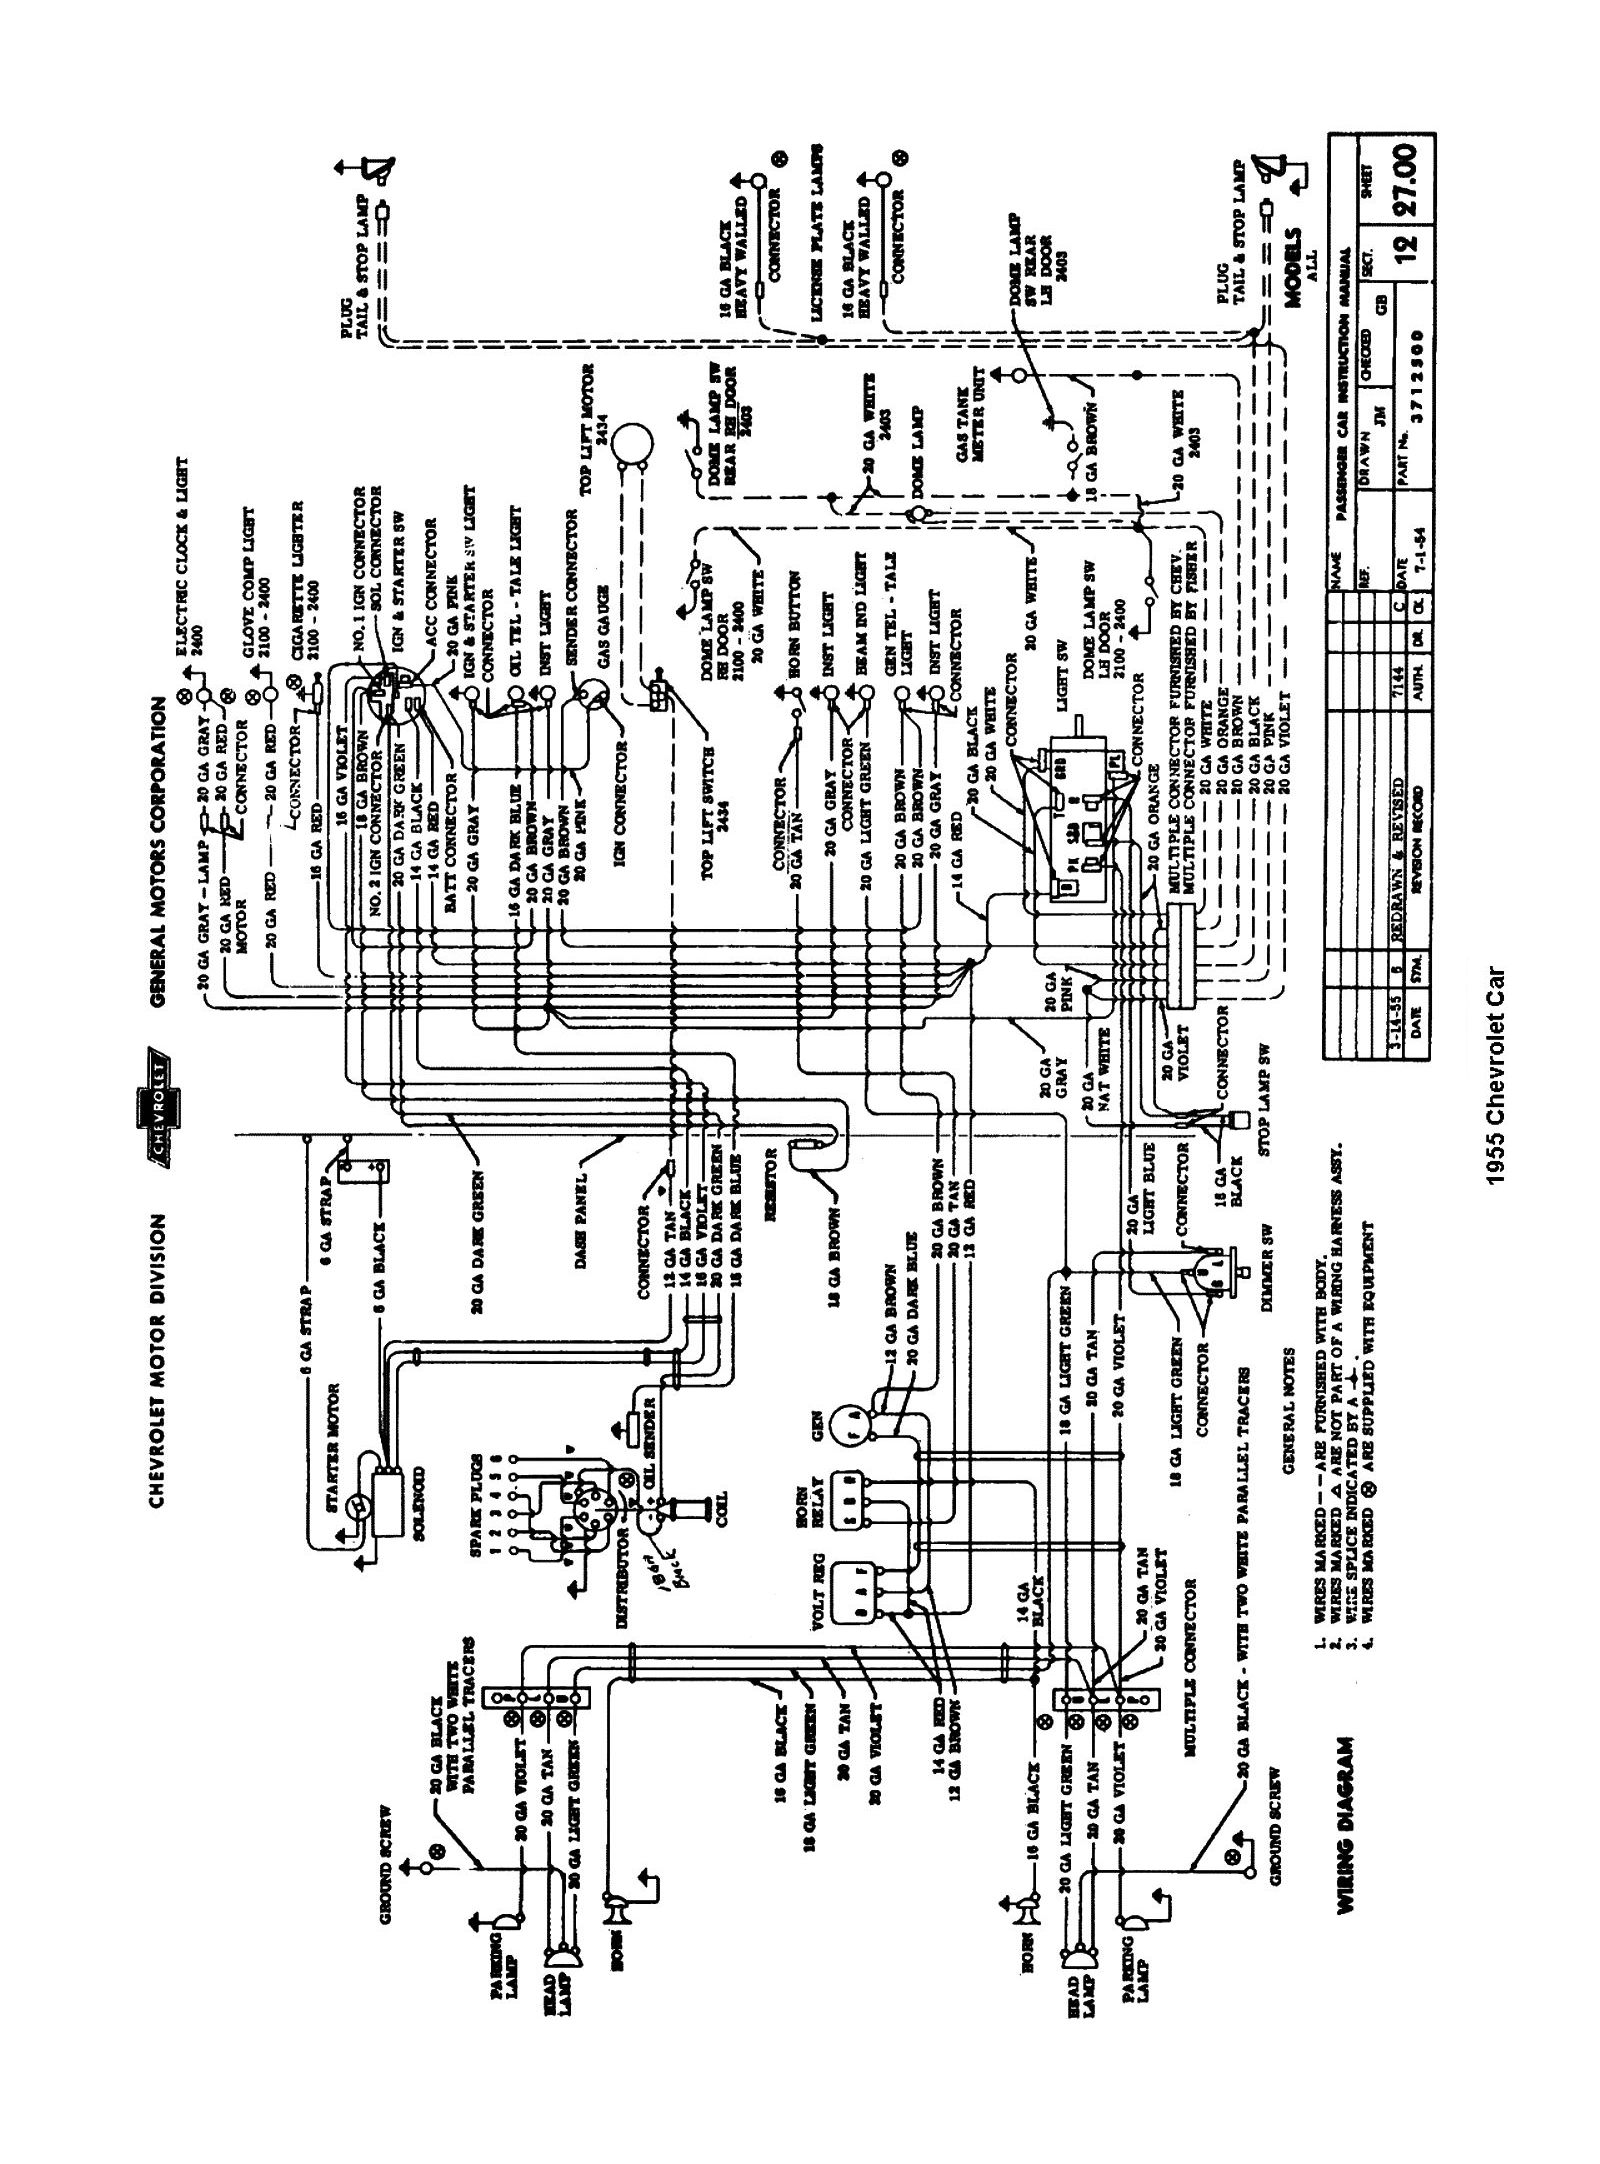 40 Chevy Bel Air Wiring Diagram   Wiring Diagrams Long drab seem ...